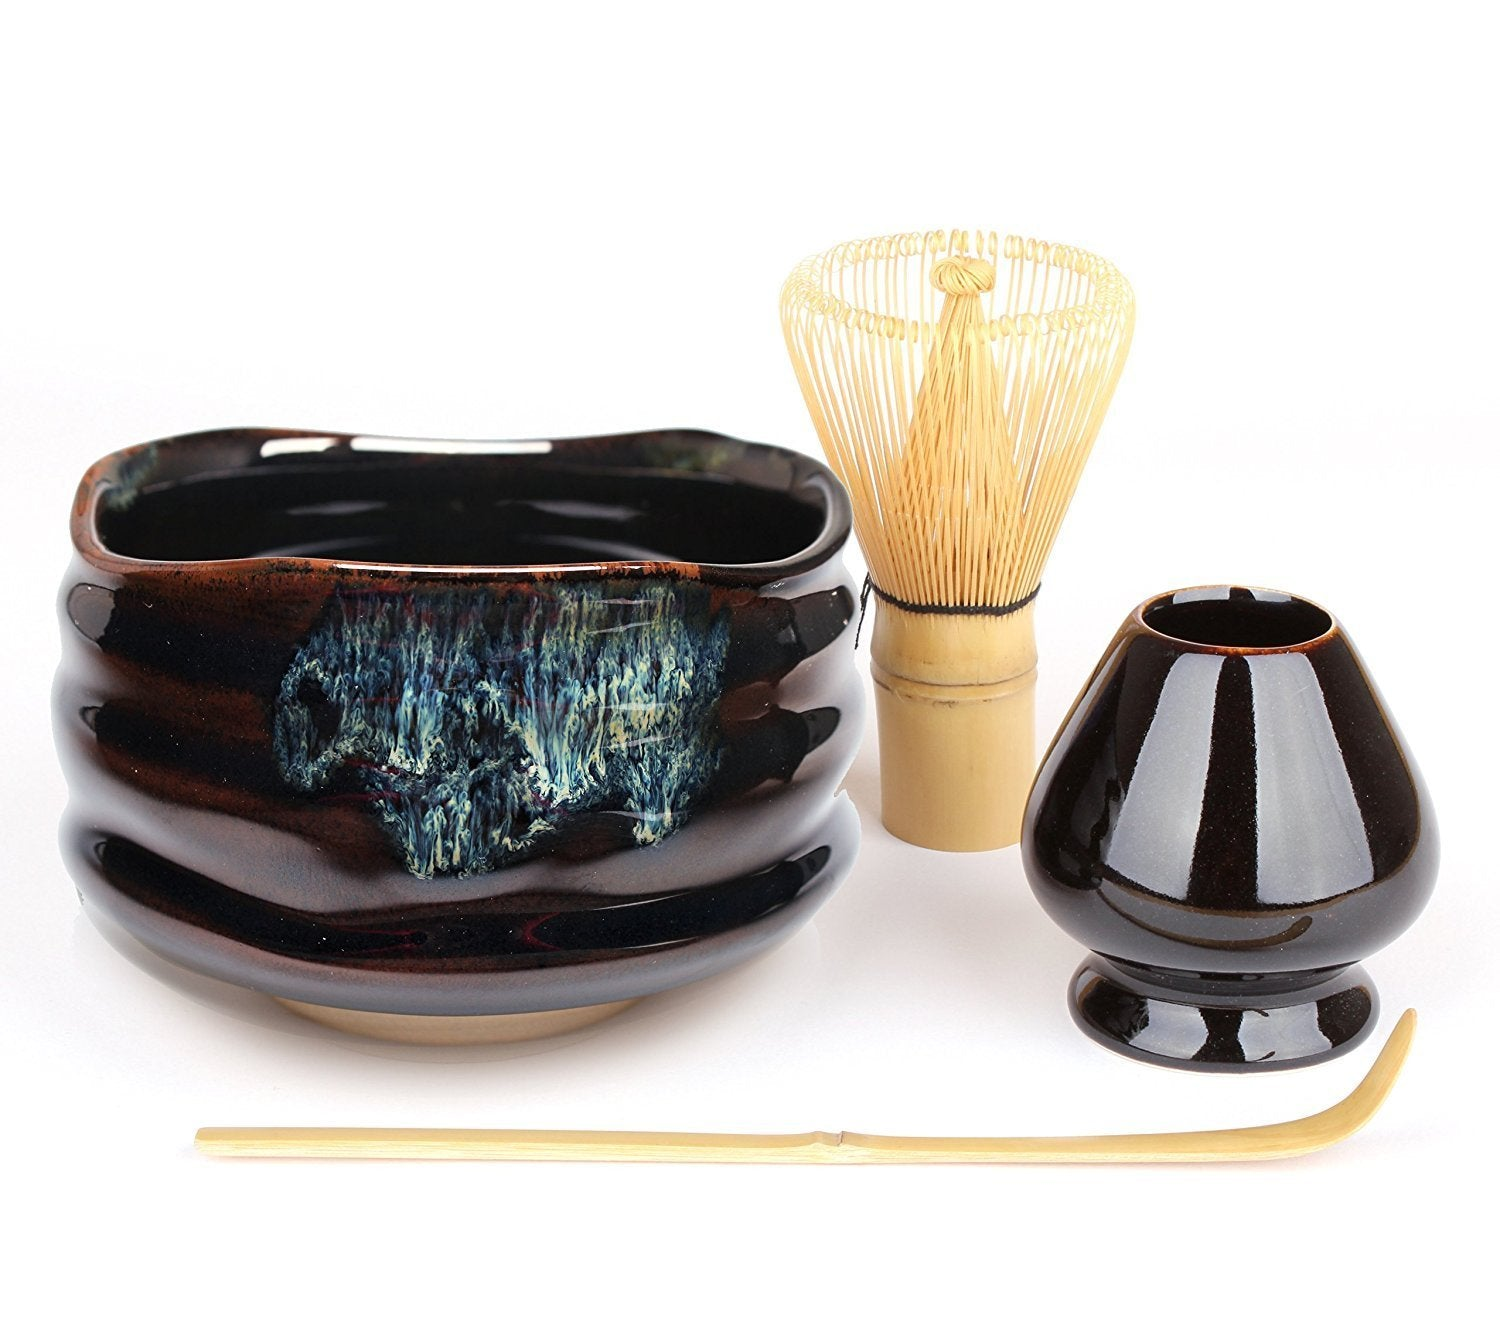 Traditional Matcha Tea Ceremony Set